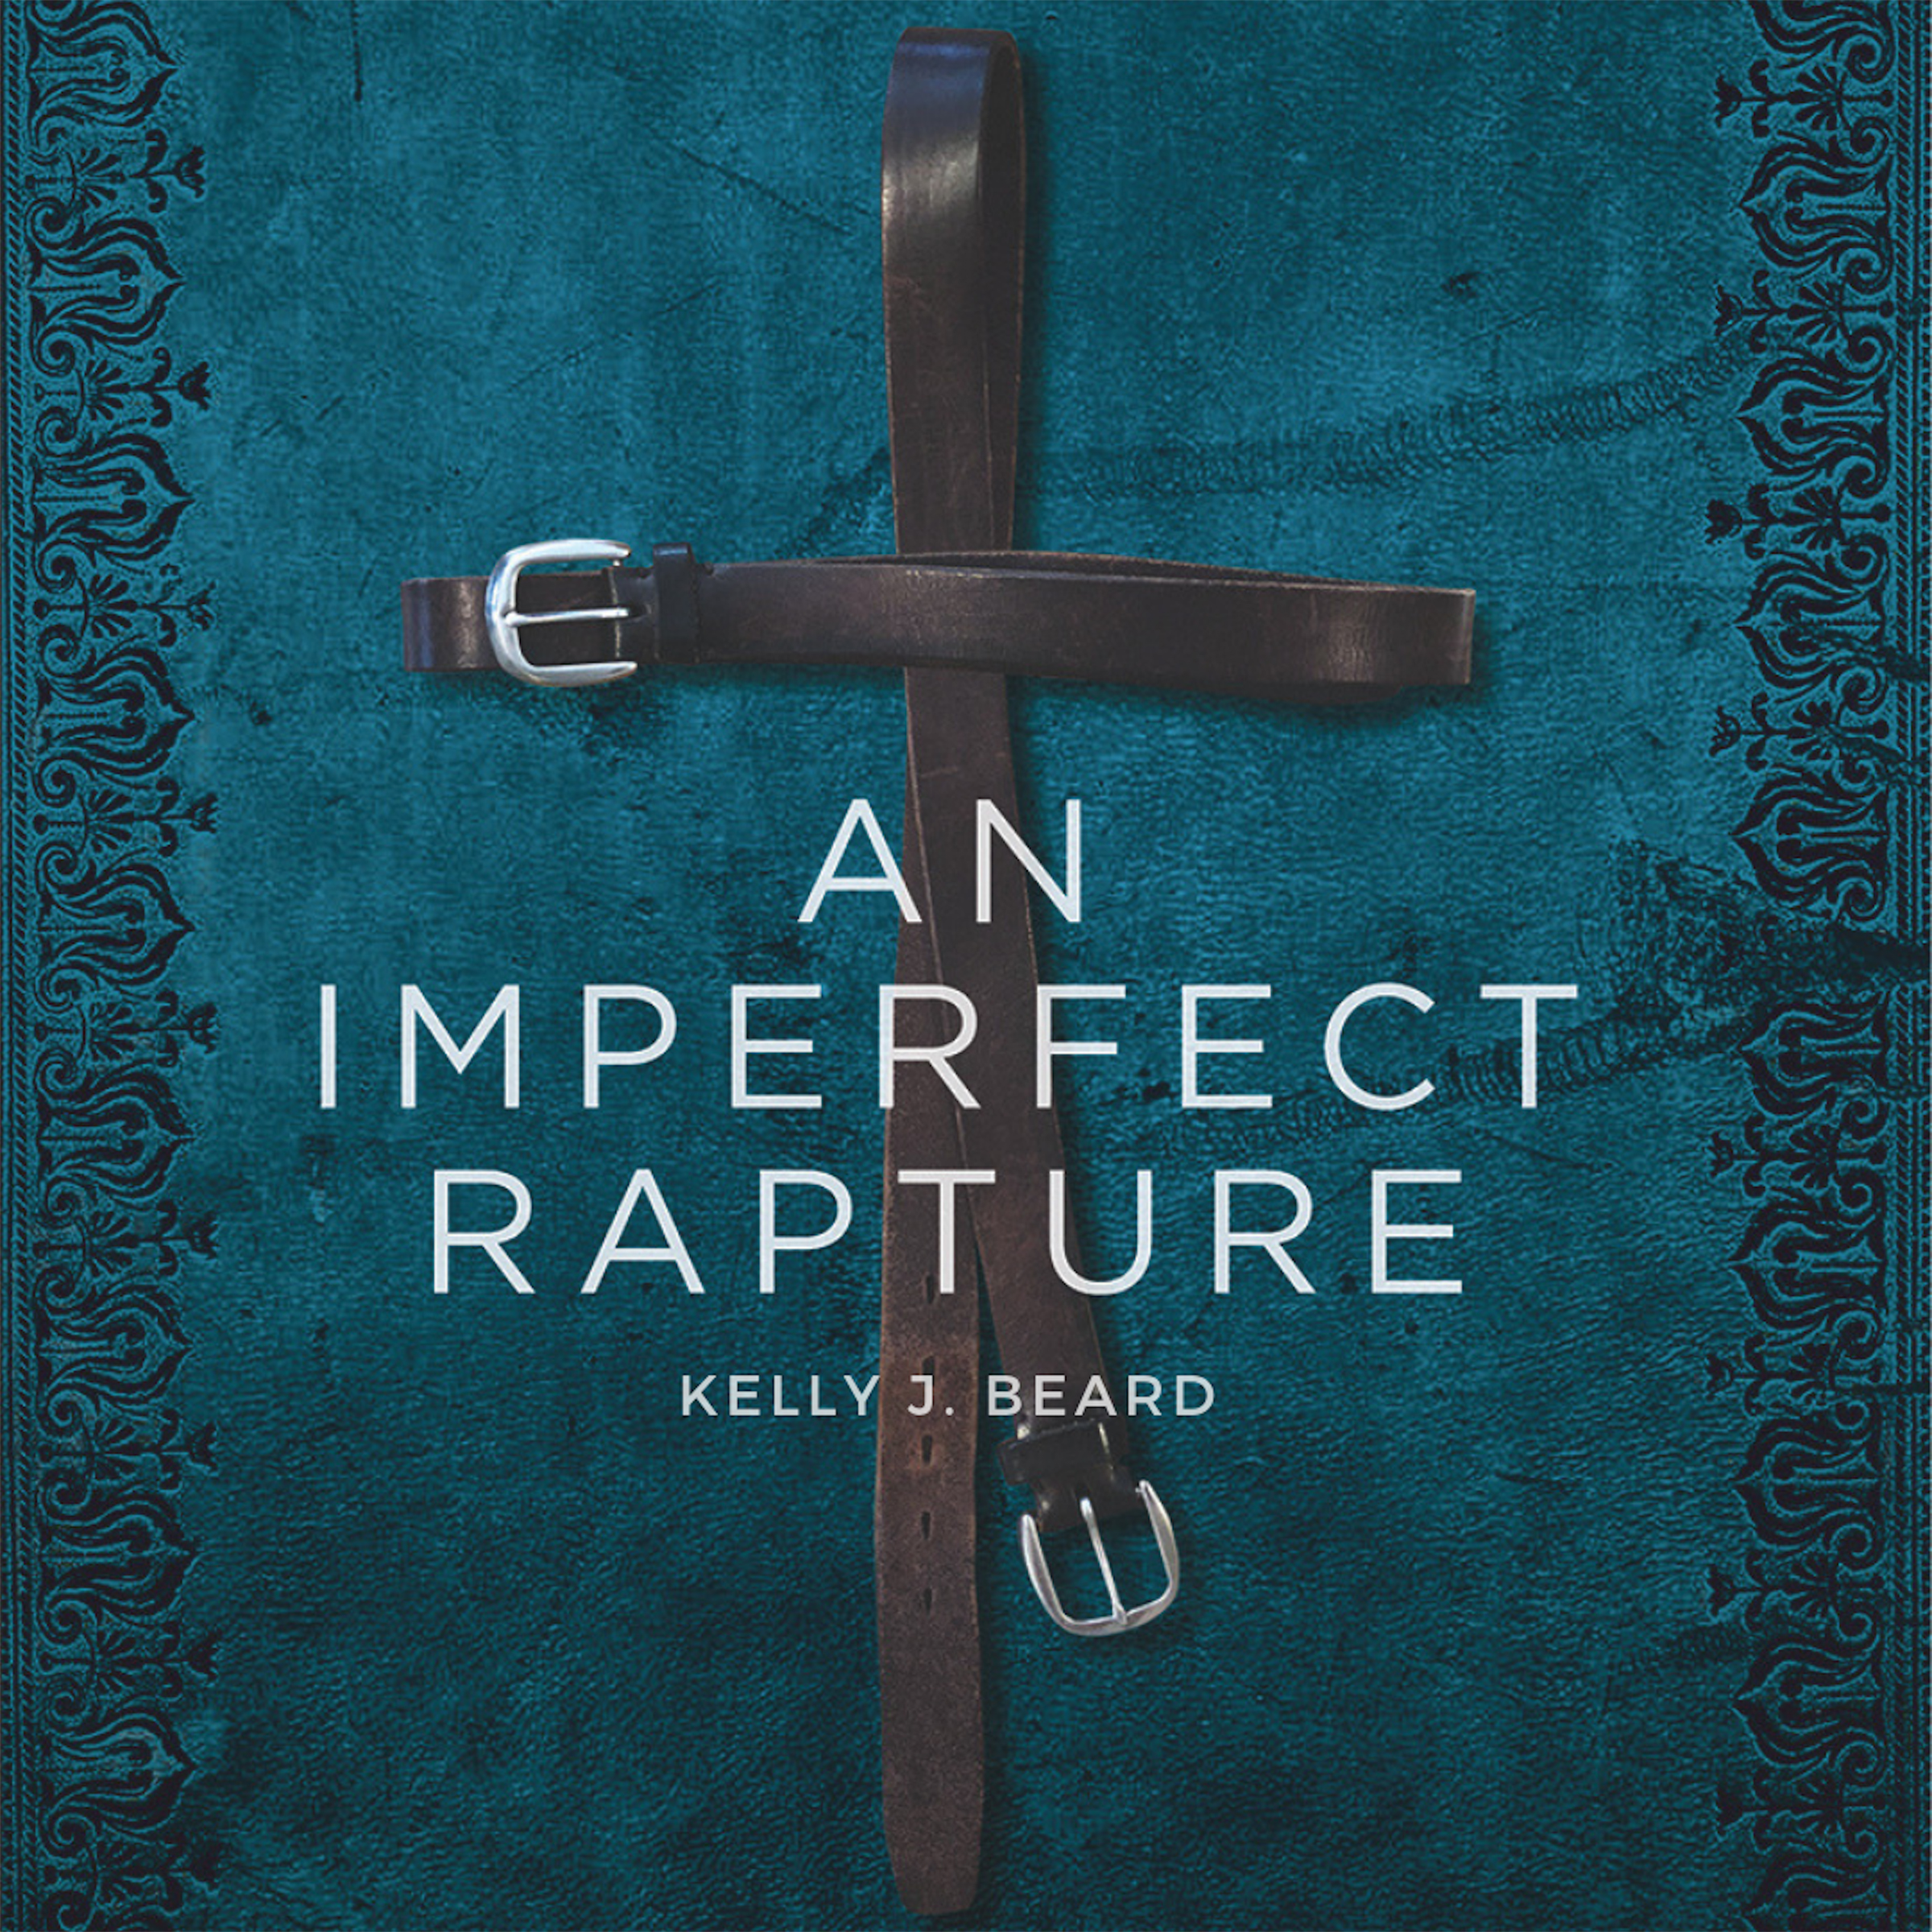 An Imperfect Rapture